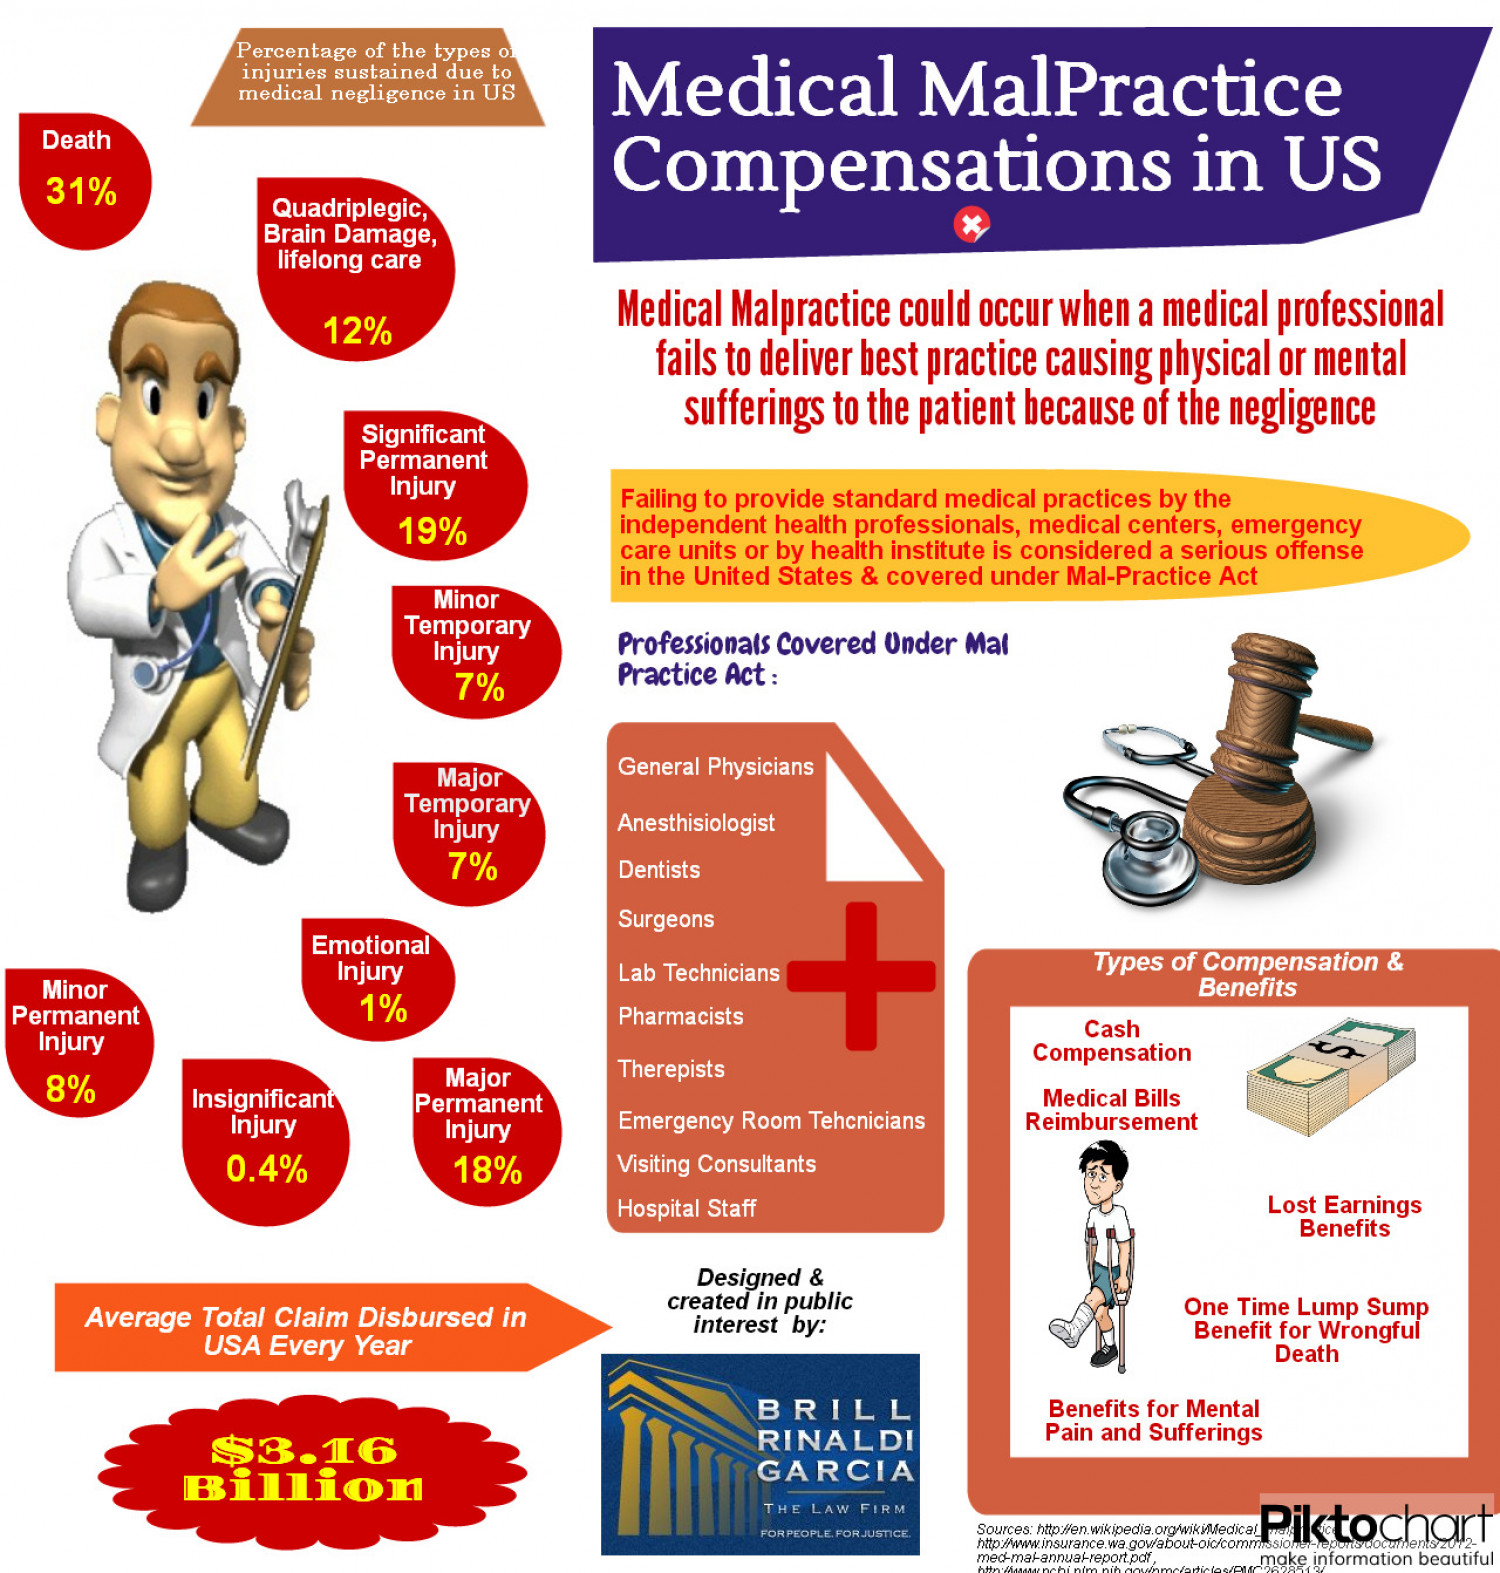 Medical Malpractice Compensation in US Infographic